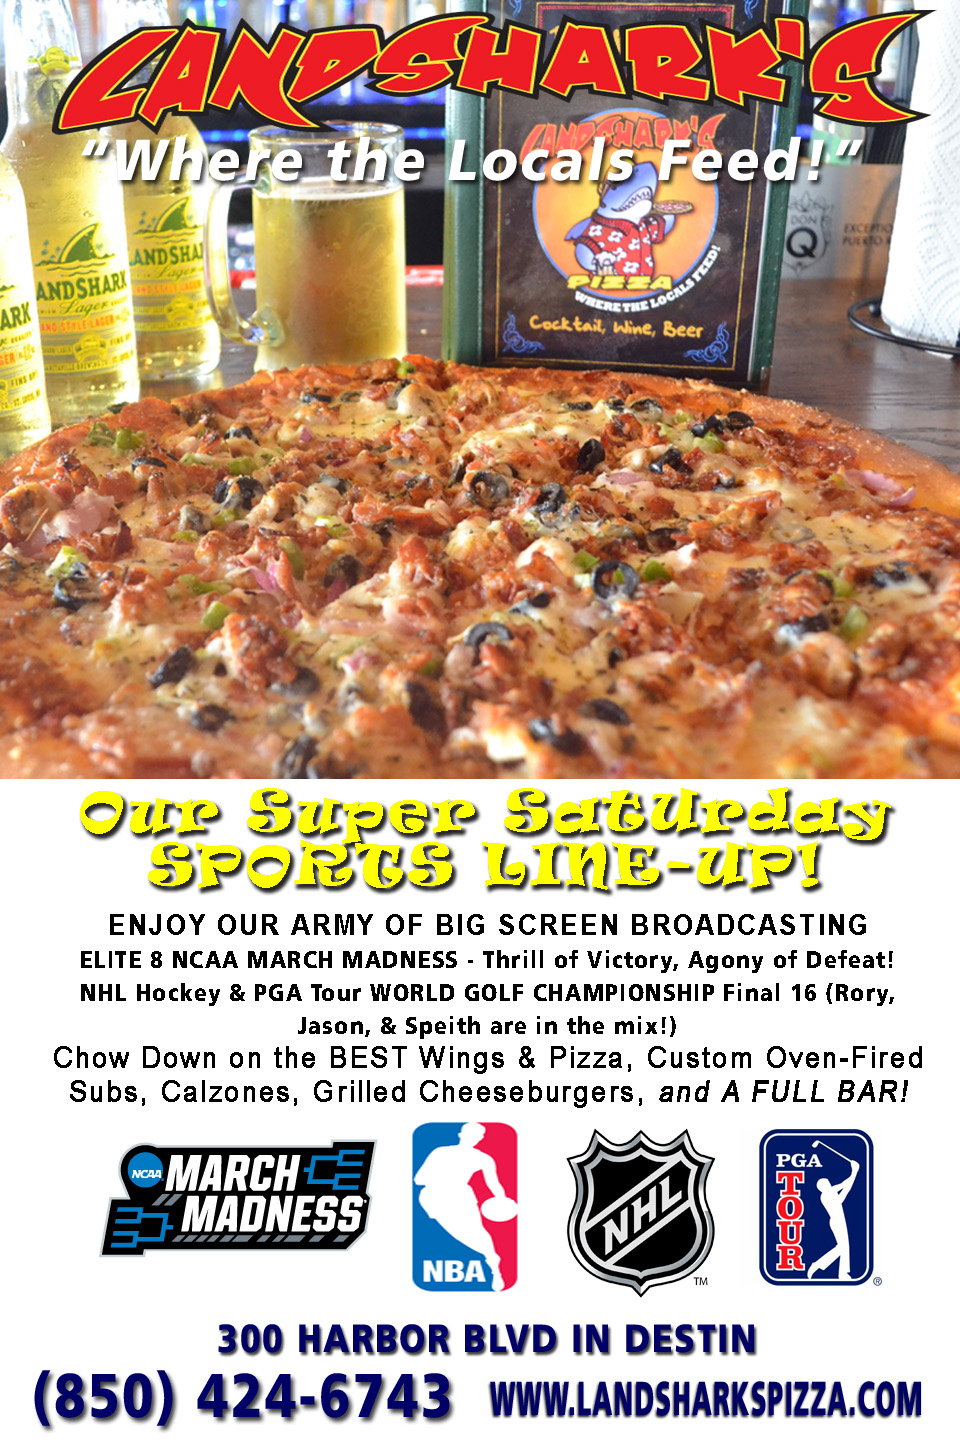 Landsharks Super Saturday Sports Lineup Destin Sports Bar